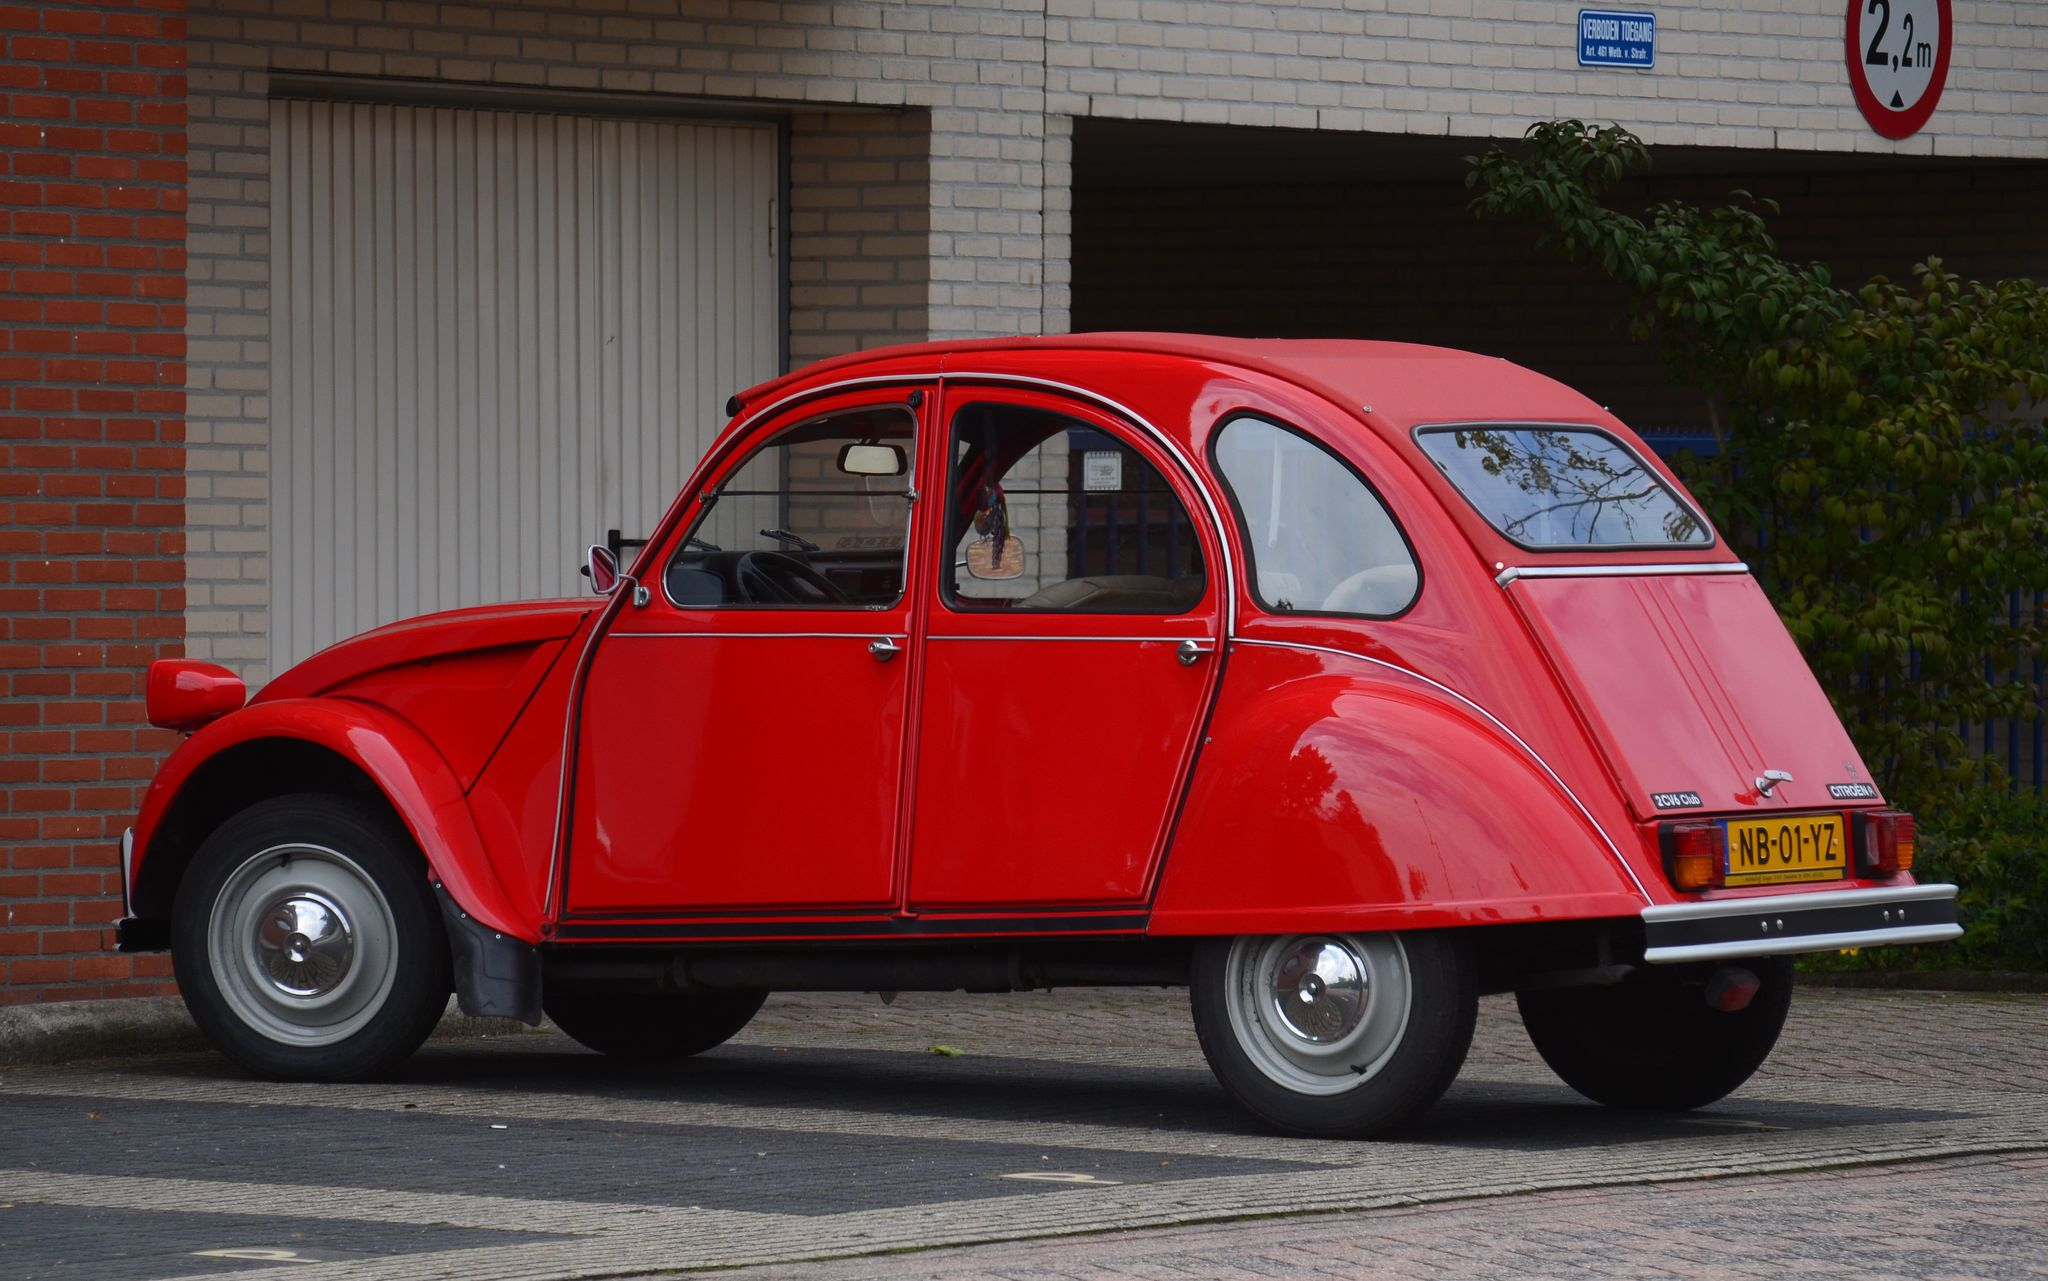 https://flic.kr/p/LzByFq | 1985 Citroen 2CV NB-01-YZ | Ede, 4 september 2015 Datum kenteken 18 april 1985